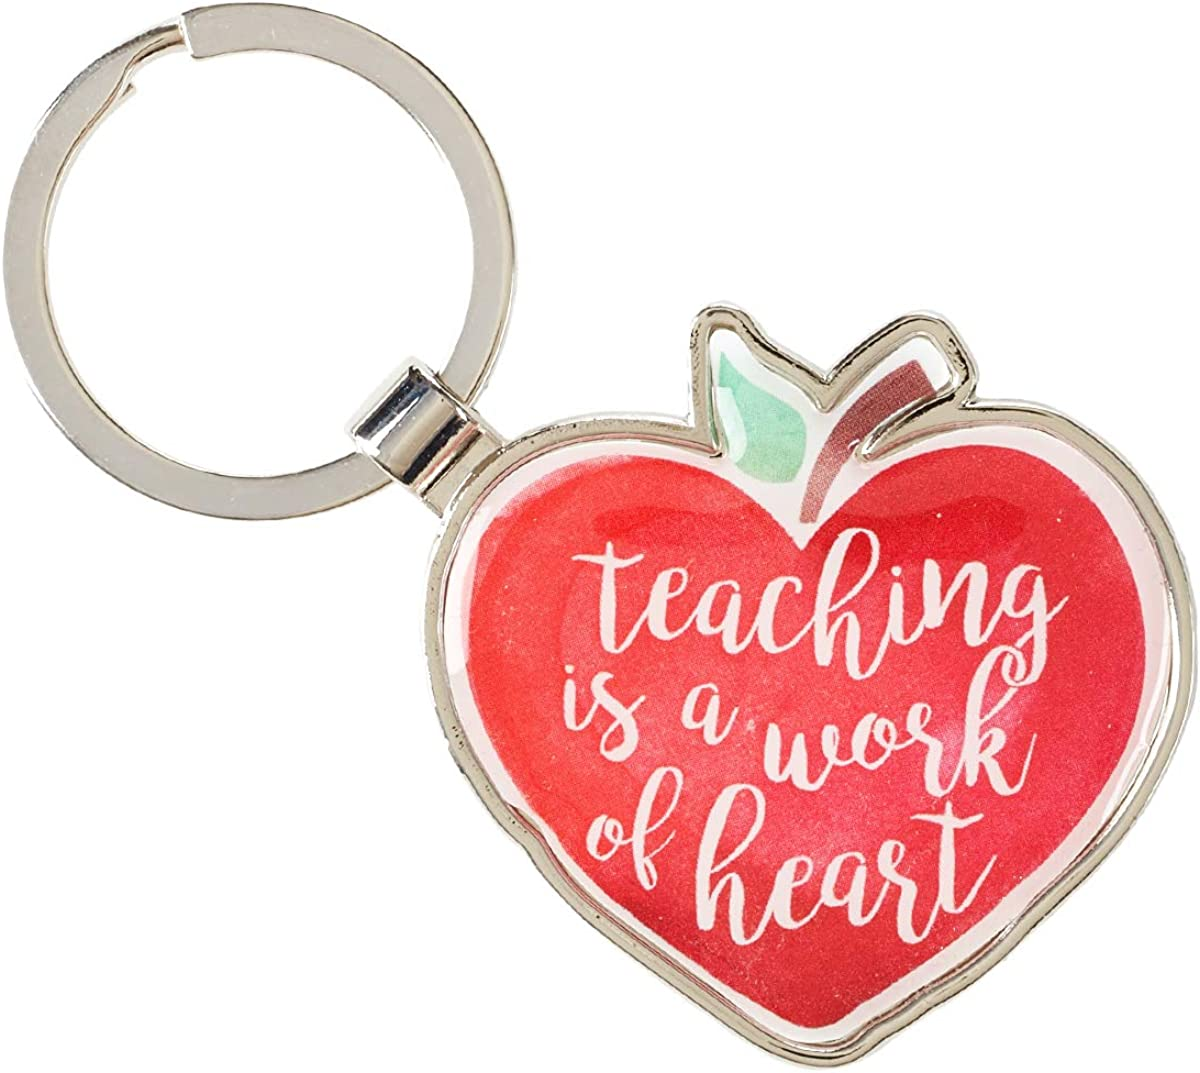 "Teacher Appreciation Keychain w/Touching Message -""Teaching is a Work of the Heart"" – Enameled Charm Bible Verse Colossians 3:23, Red Heart Shaped Apple Charm Key Ring"